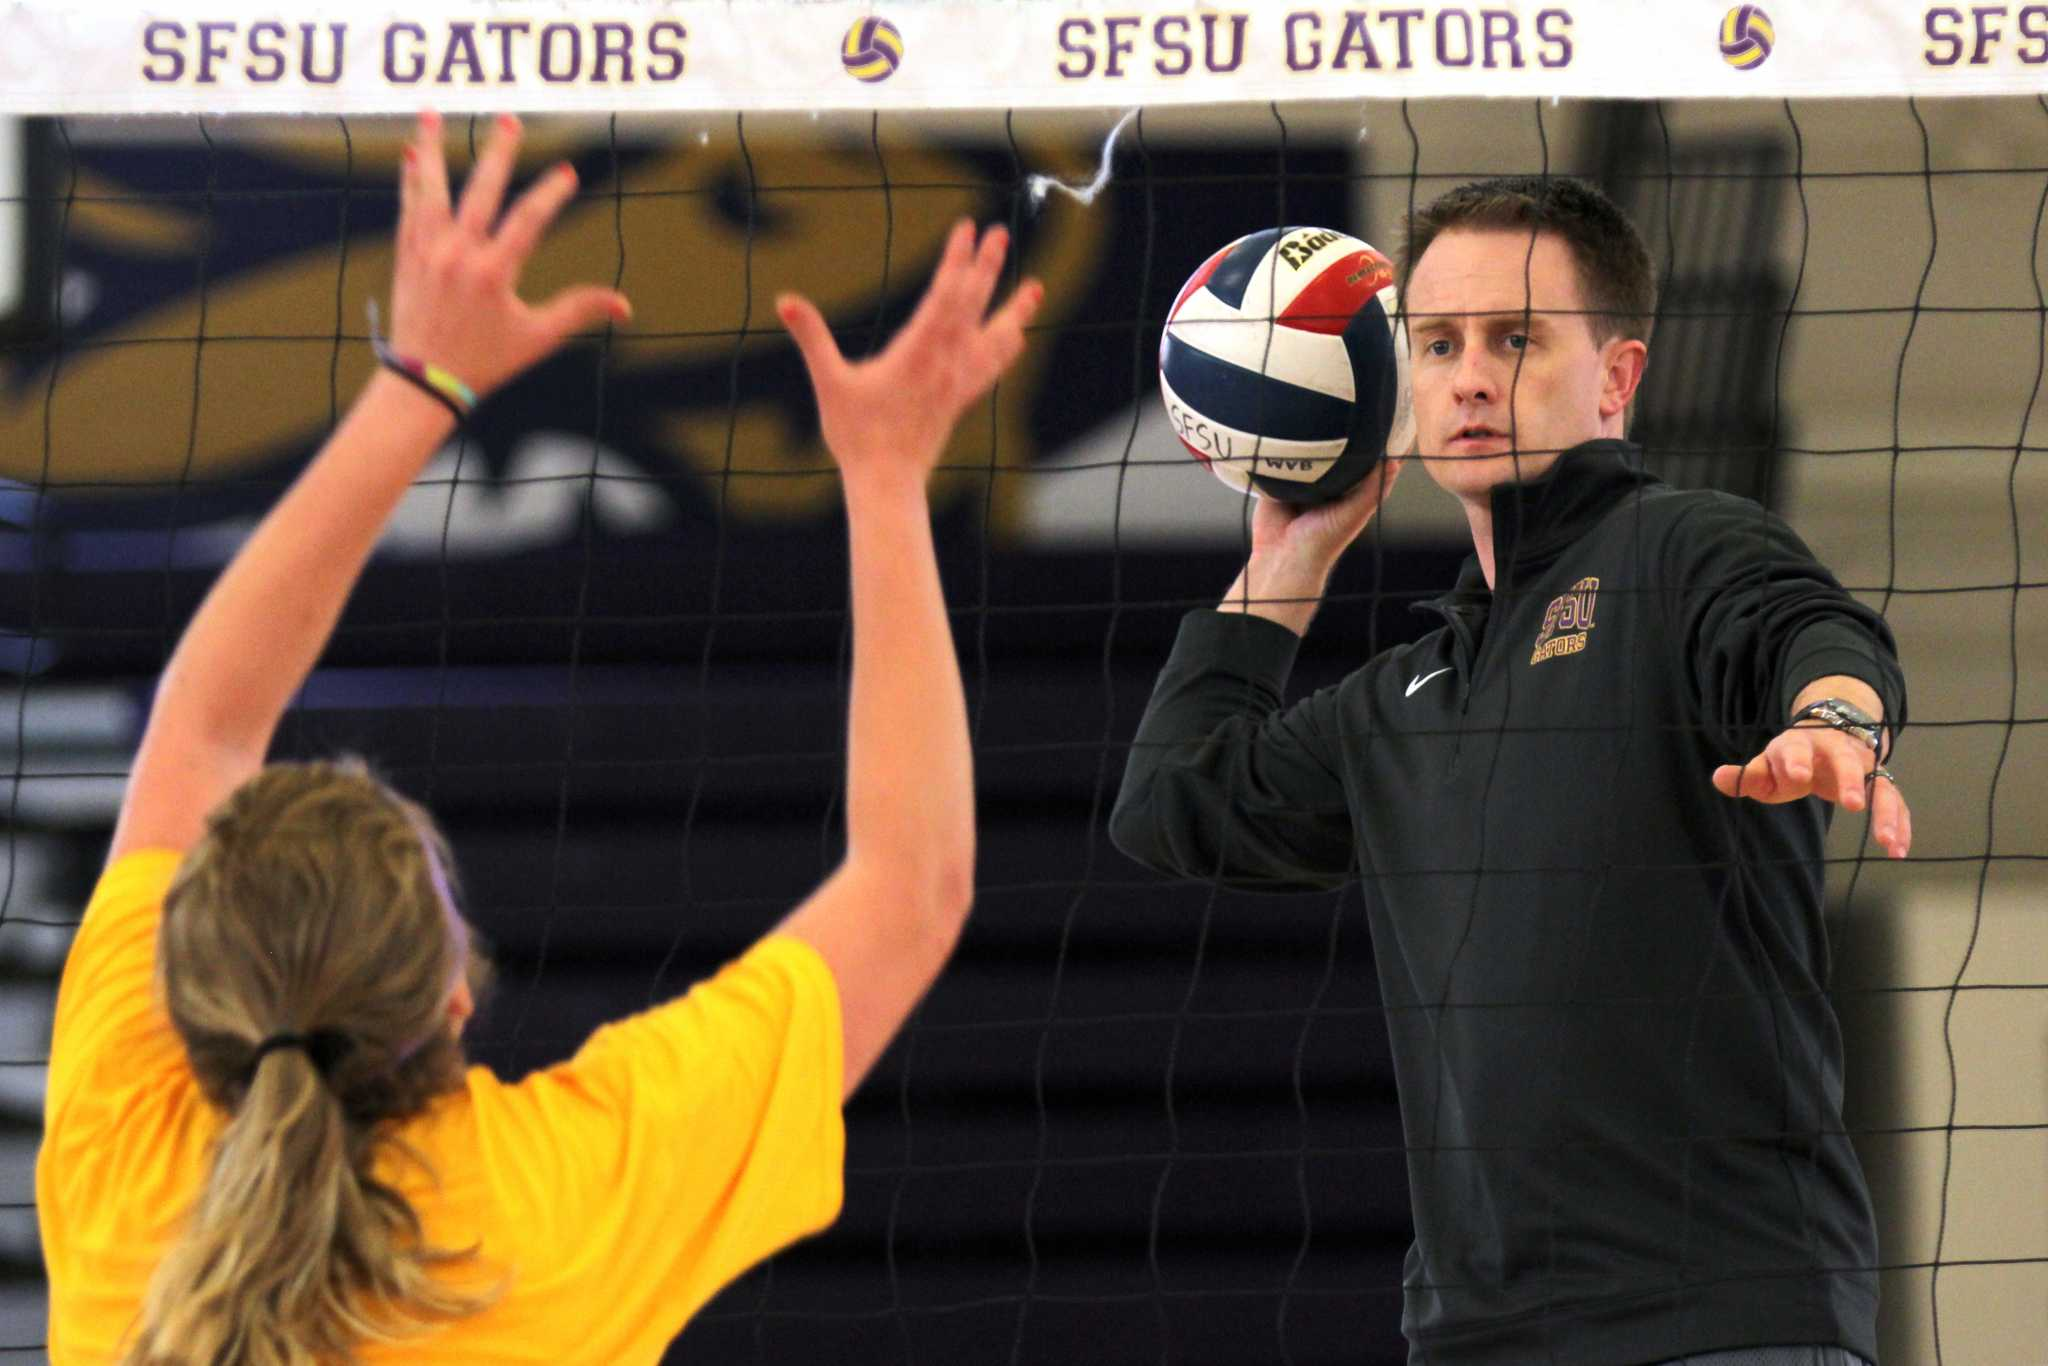 SF State Gators volleyball head coach Matt Hoffman runs drills with the team in The Swamp on Thursday, April 7, 2016. Hoffman was announced as the new volleyball coach on Tuesday, March 29, 2016.